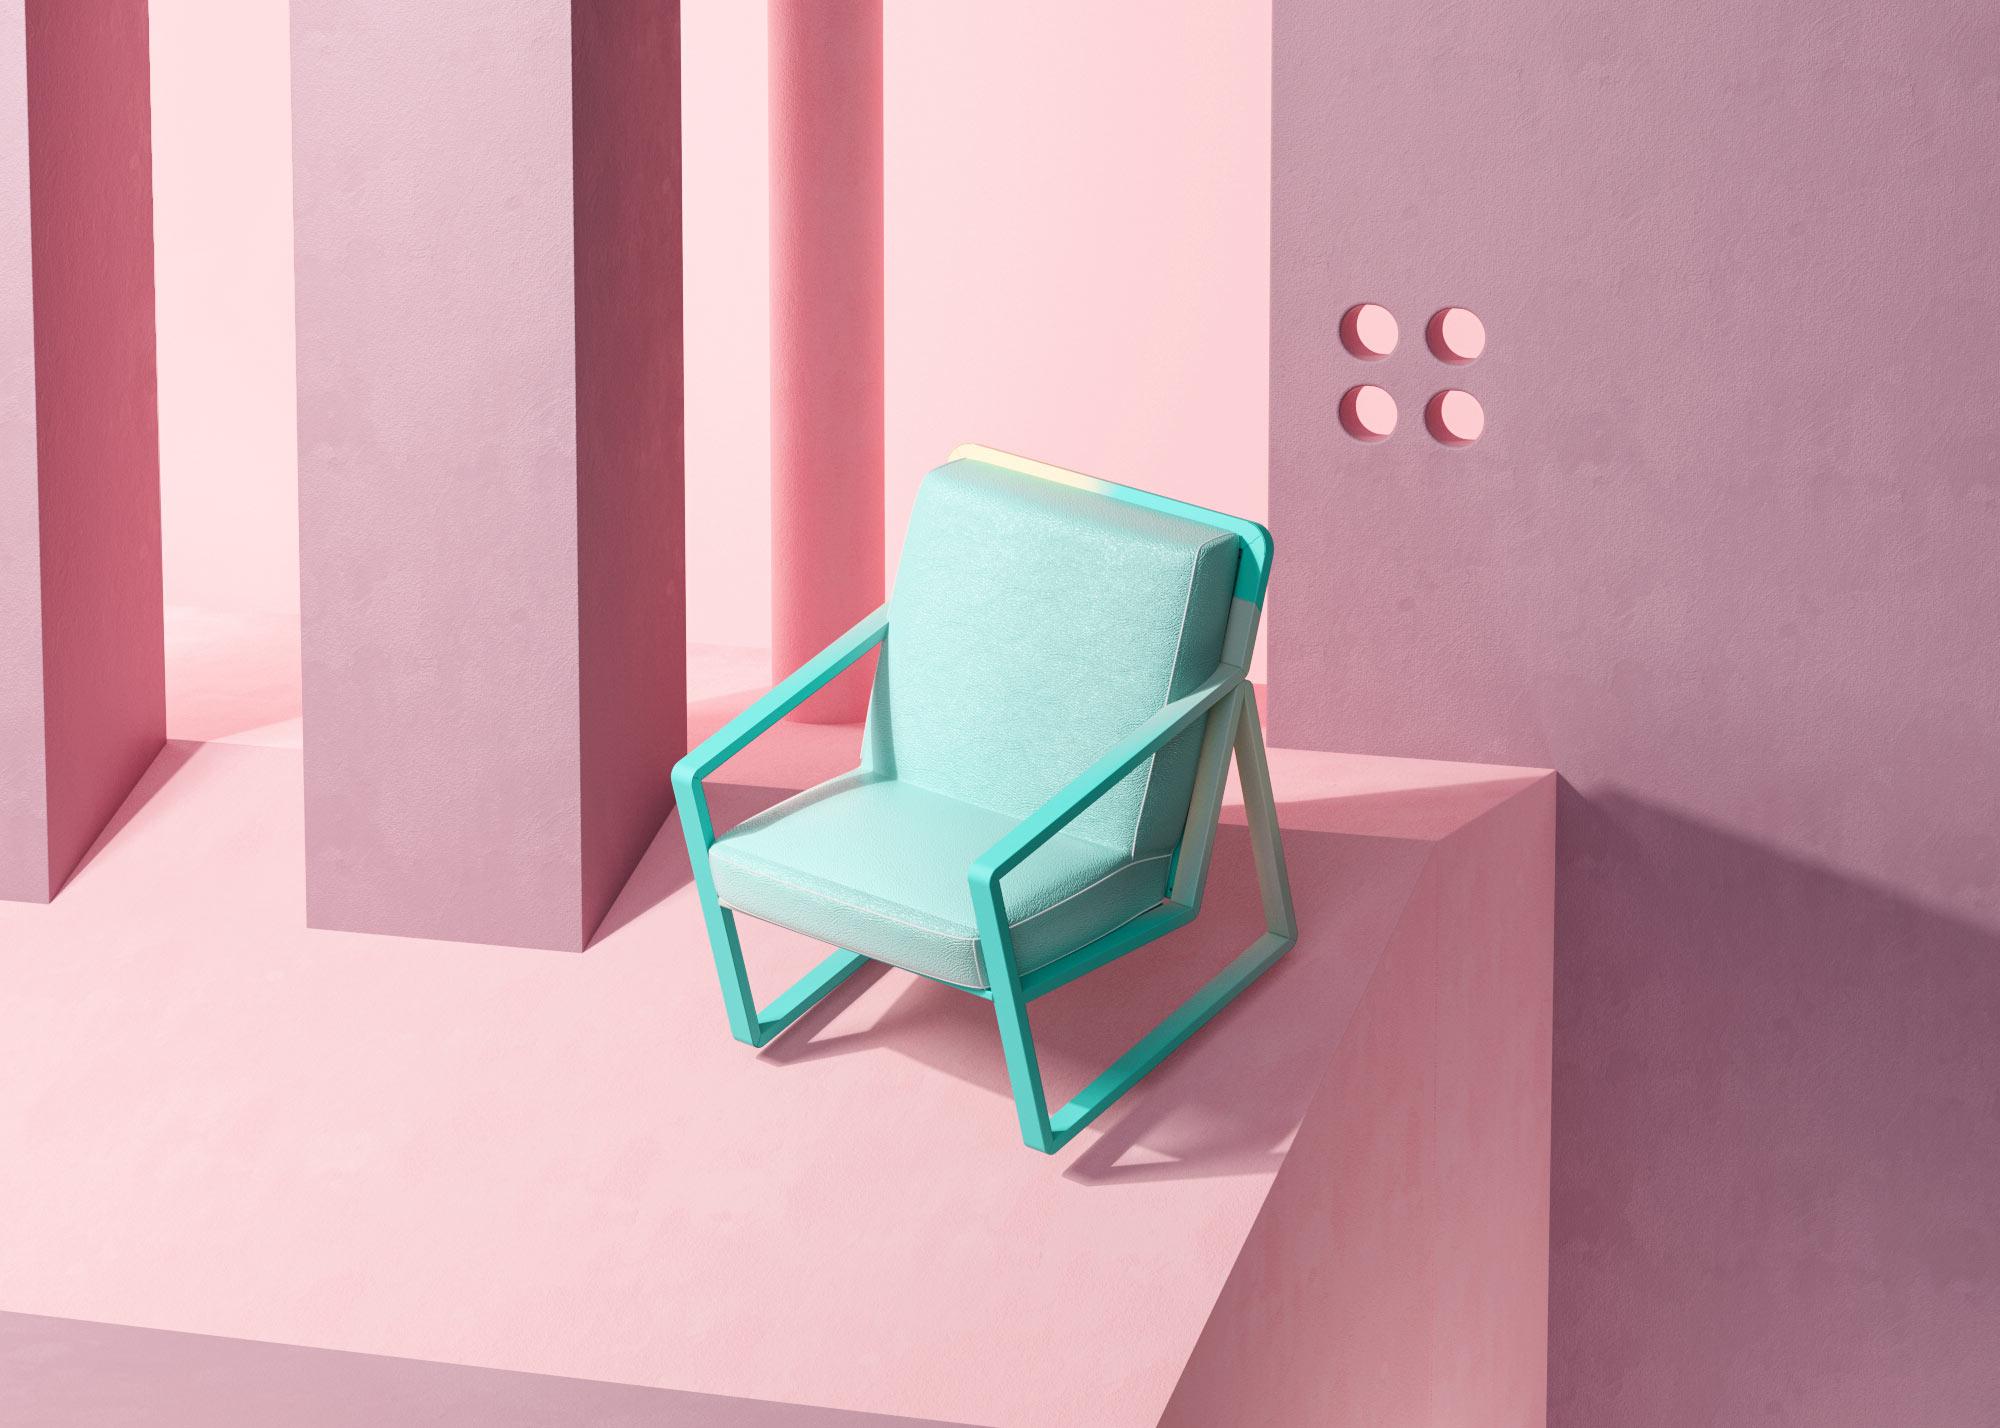 Seat_03_wide